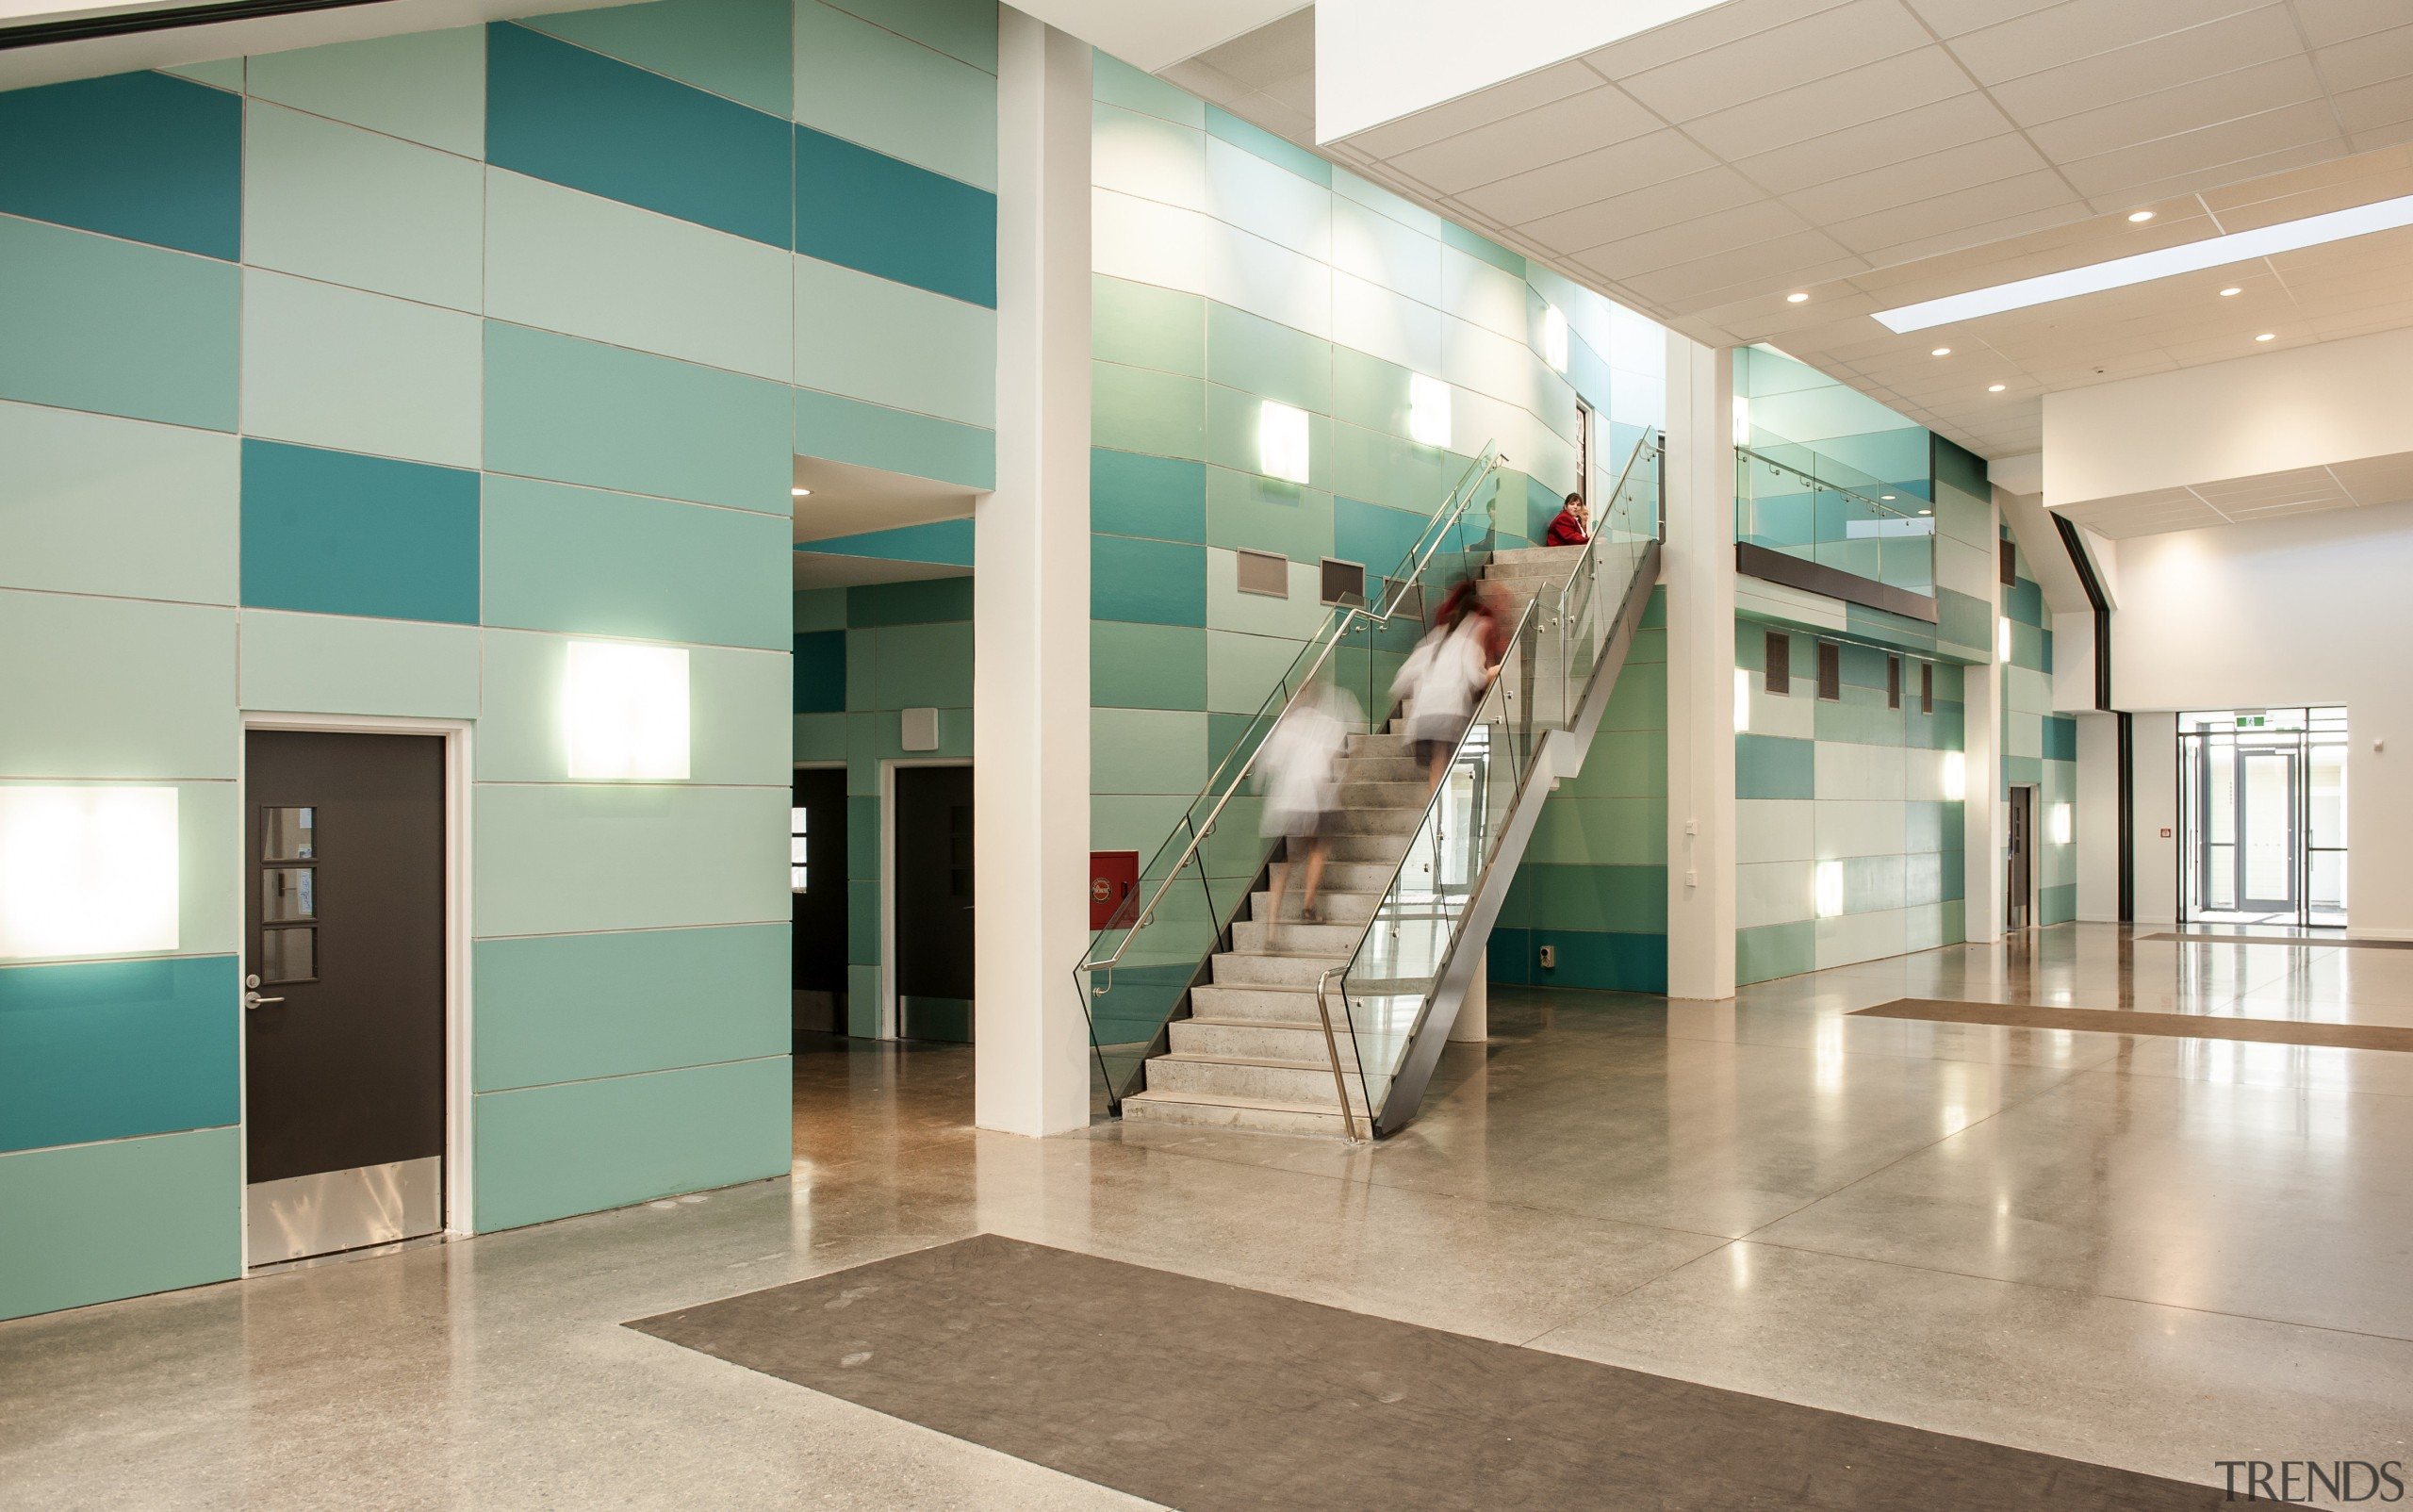 Colour in performing arts auditorium.. Resene Paints feature ceiling, floor, flooring, glass, interior design, lobby, gray